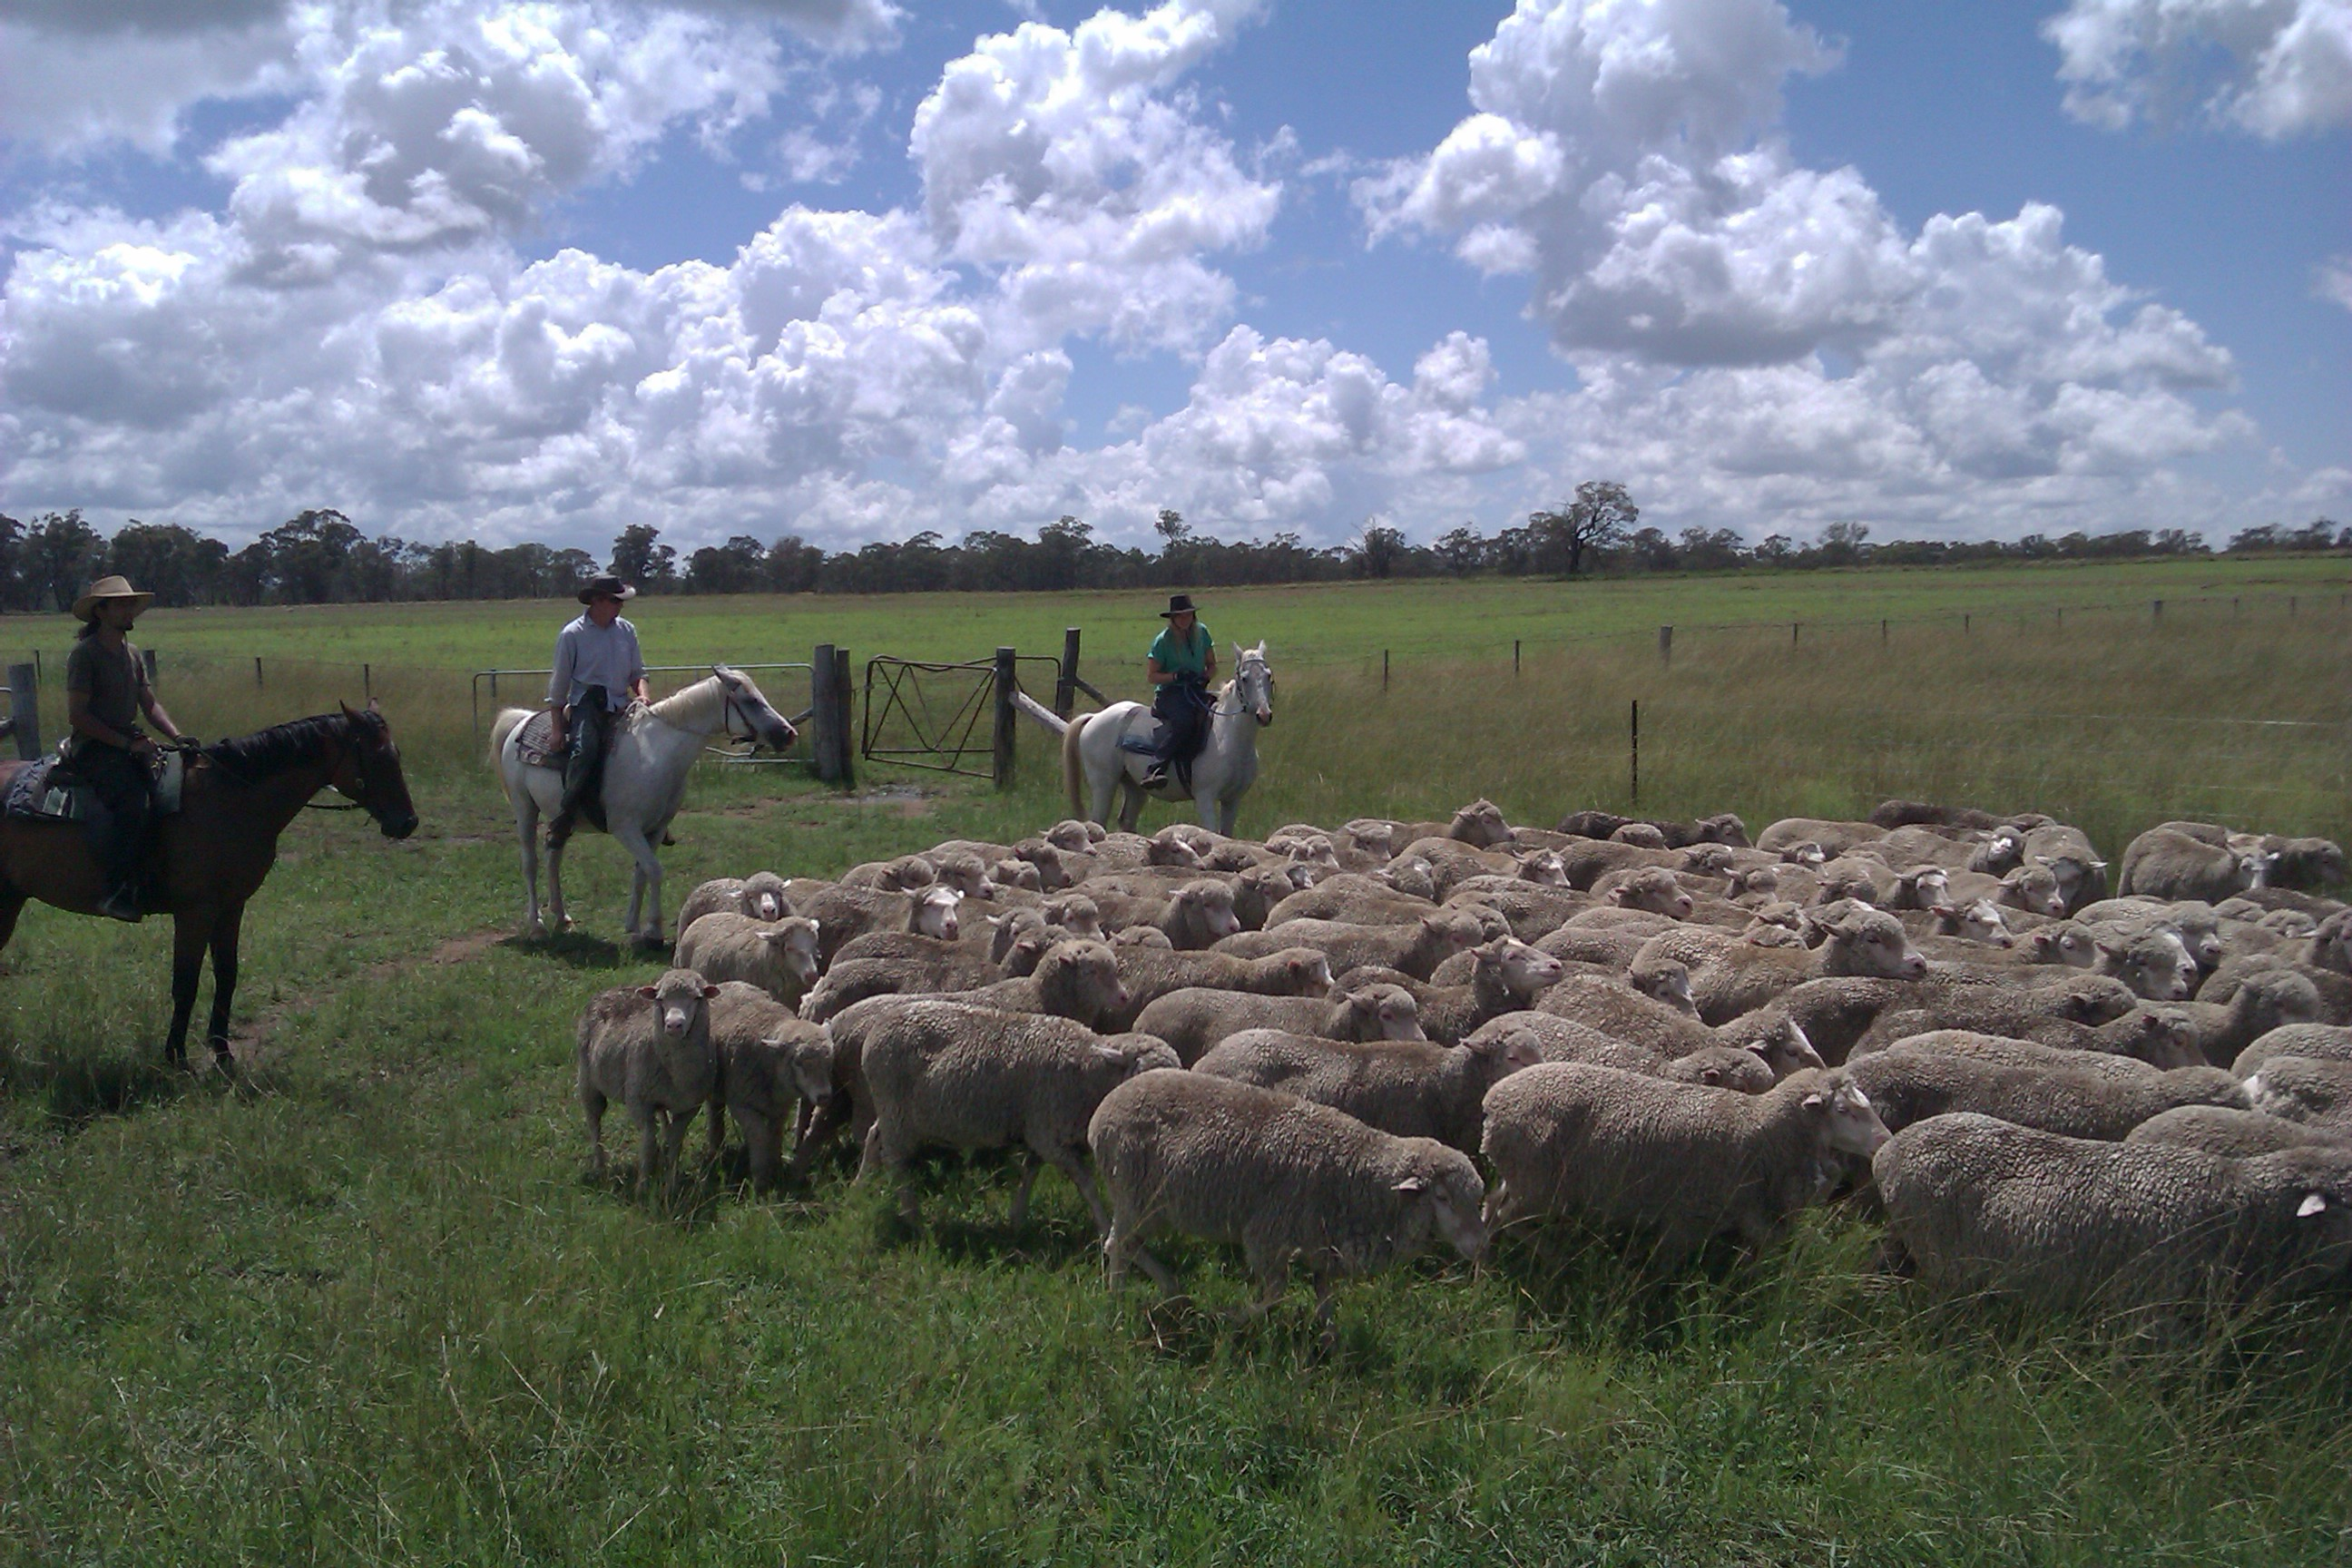 Coonabarabran Australia  City pictures : Coonabarabran, Australia: Outbackpackers and The Art of Farming ...